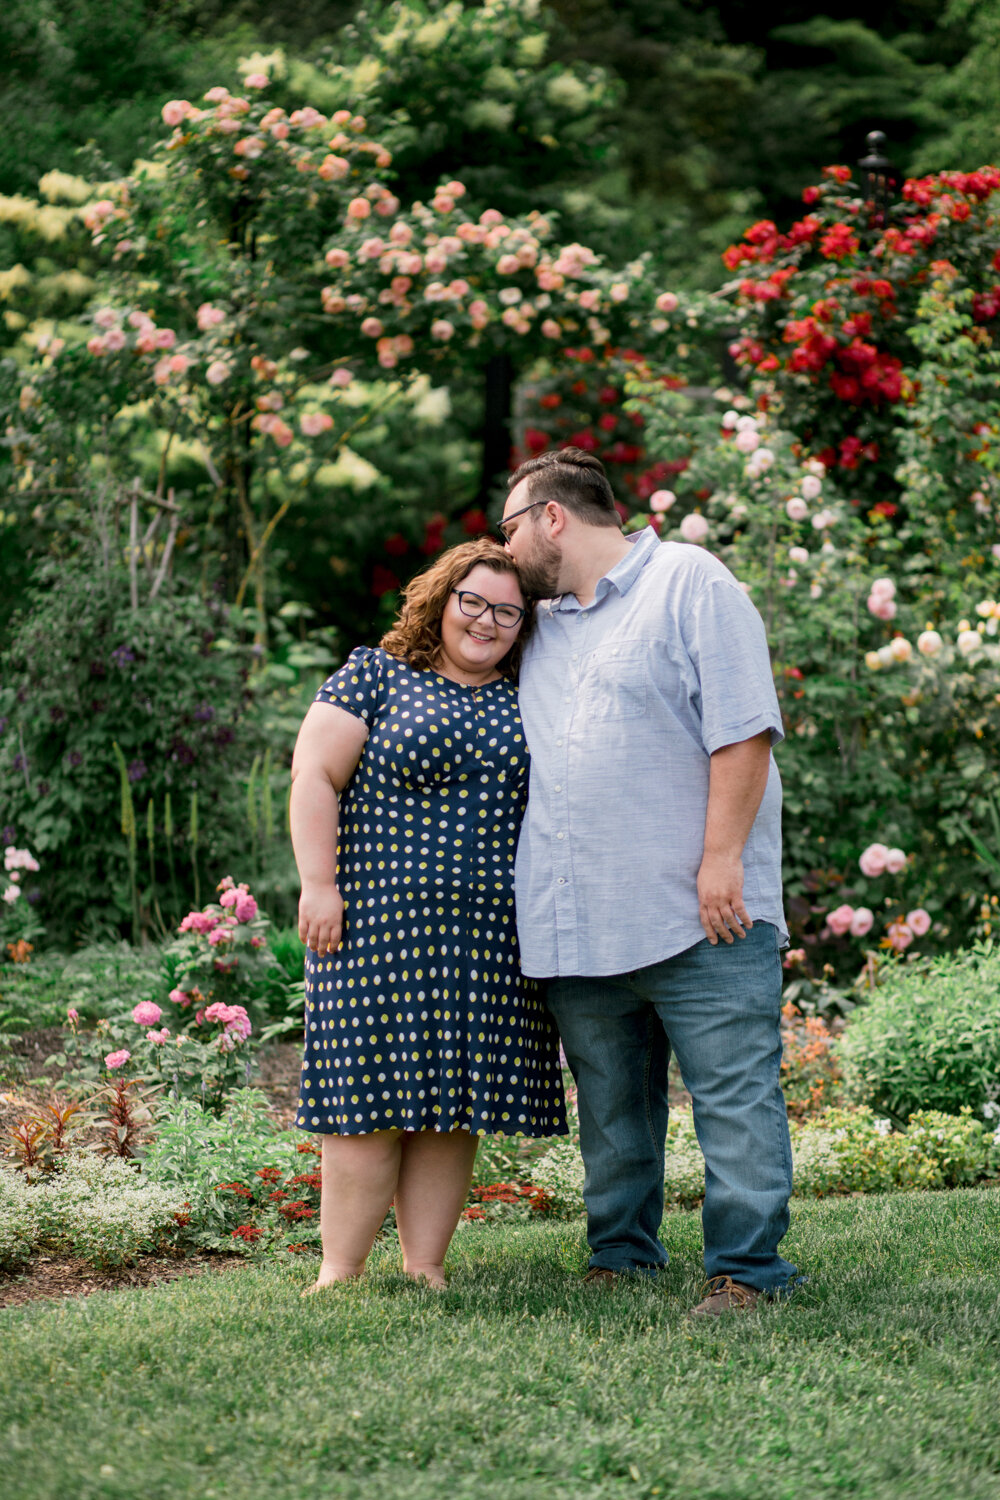 morris-arboretum-chestnut-hill-garden-engagement-session-philadelphia-wedding-photography-14.jpg